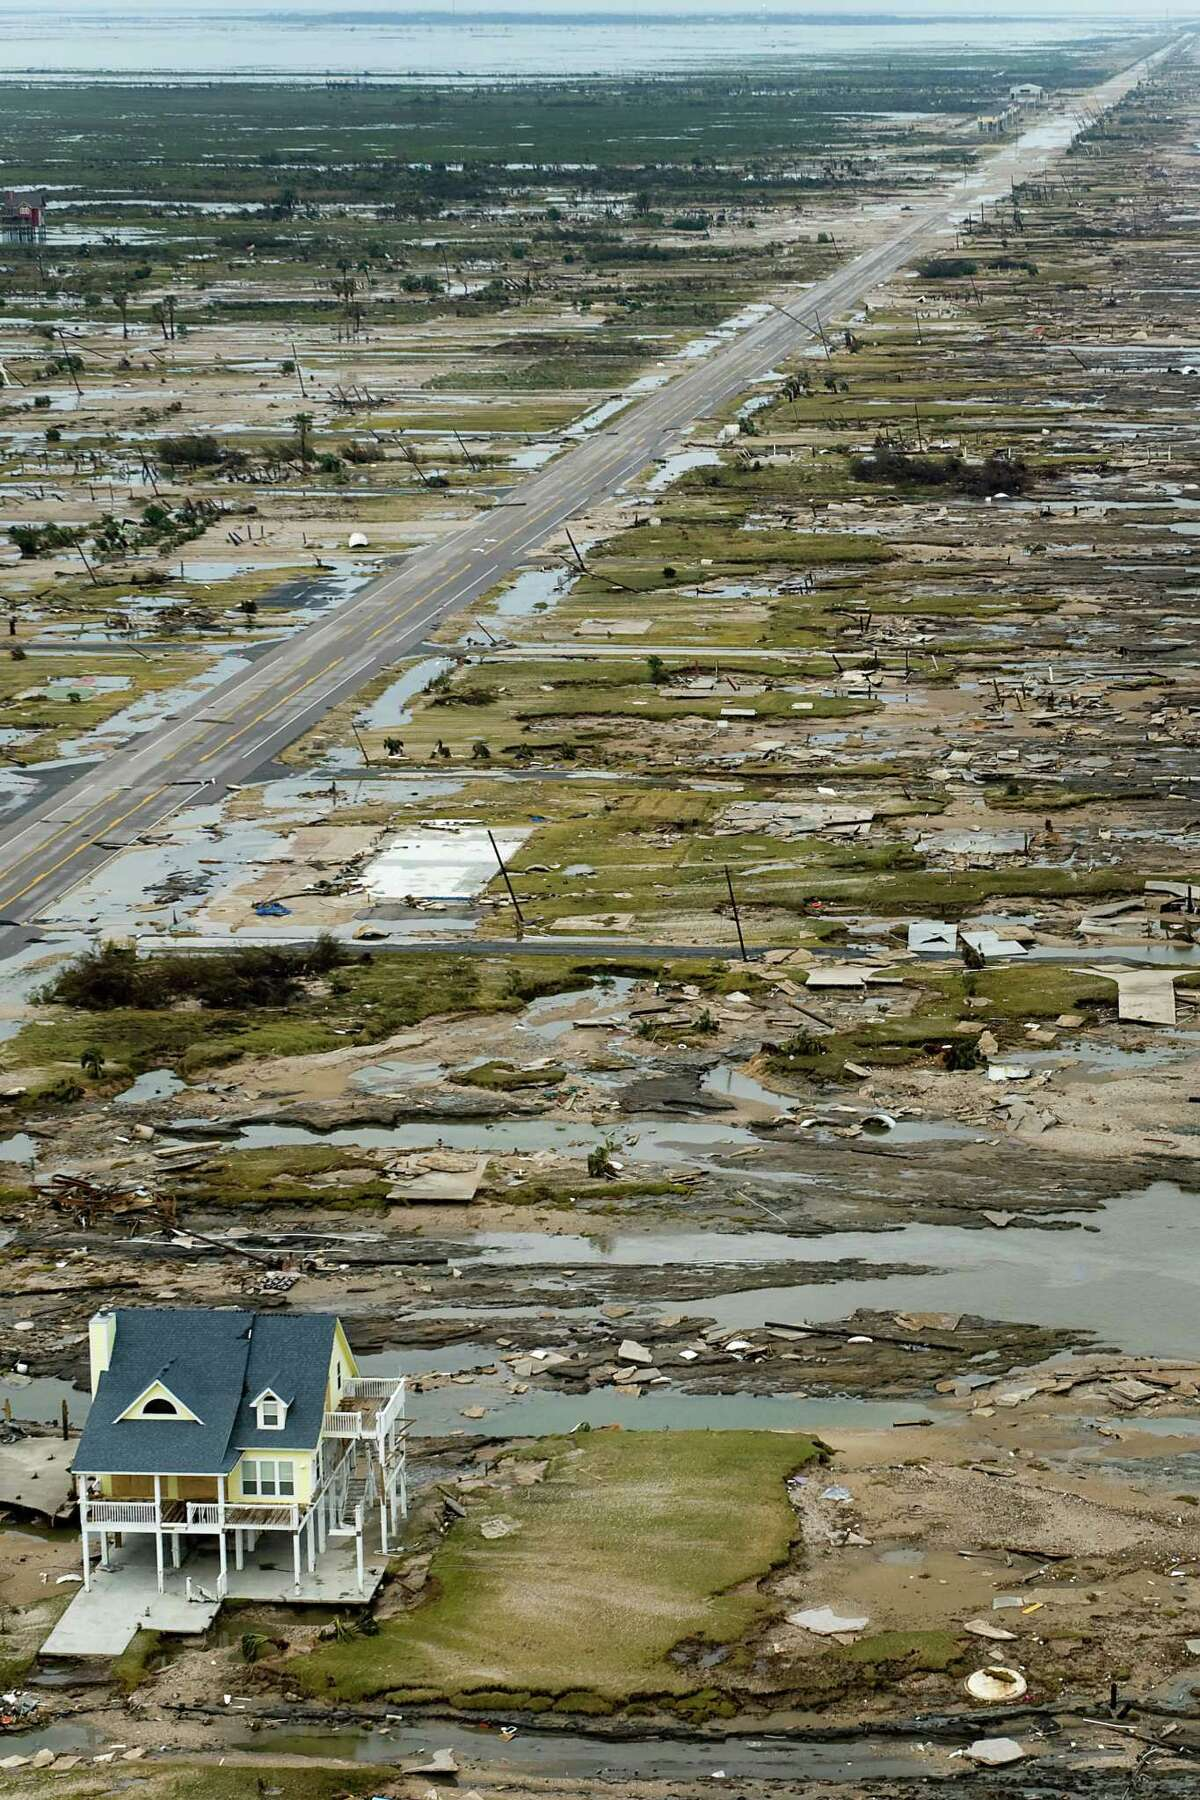 A single house is left standing amidst the devastation left by Hurricane Ike, Sunday, Sept. 14, 2008, in Gilchrist, Texas. ( Smiley N. Pool / Chronicle ) Warren and Pam Adams house is left standing amidst the devastation left by Hurricane Ike in Gilchrist.